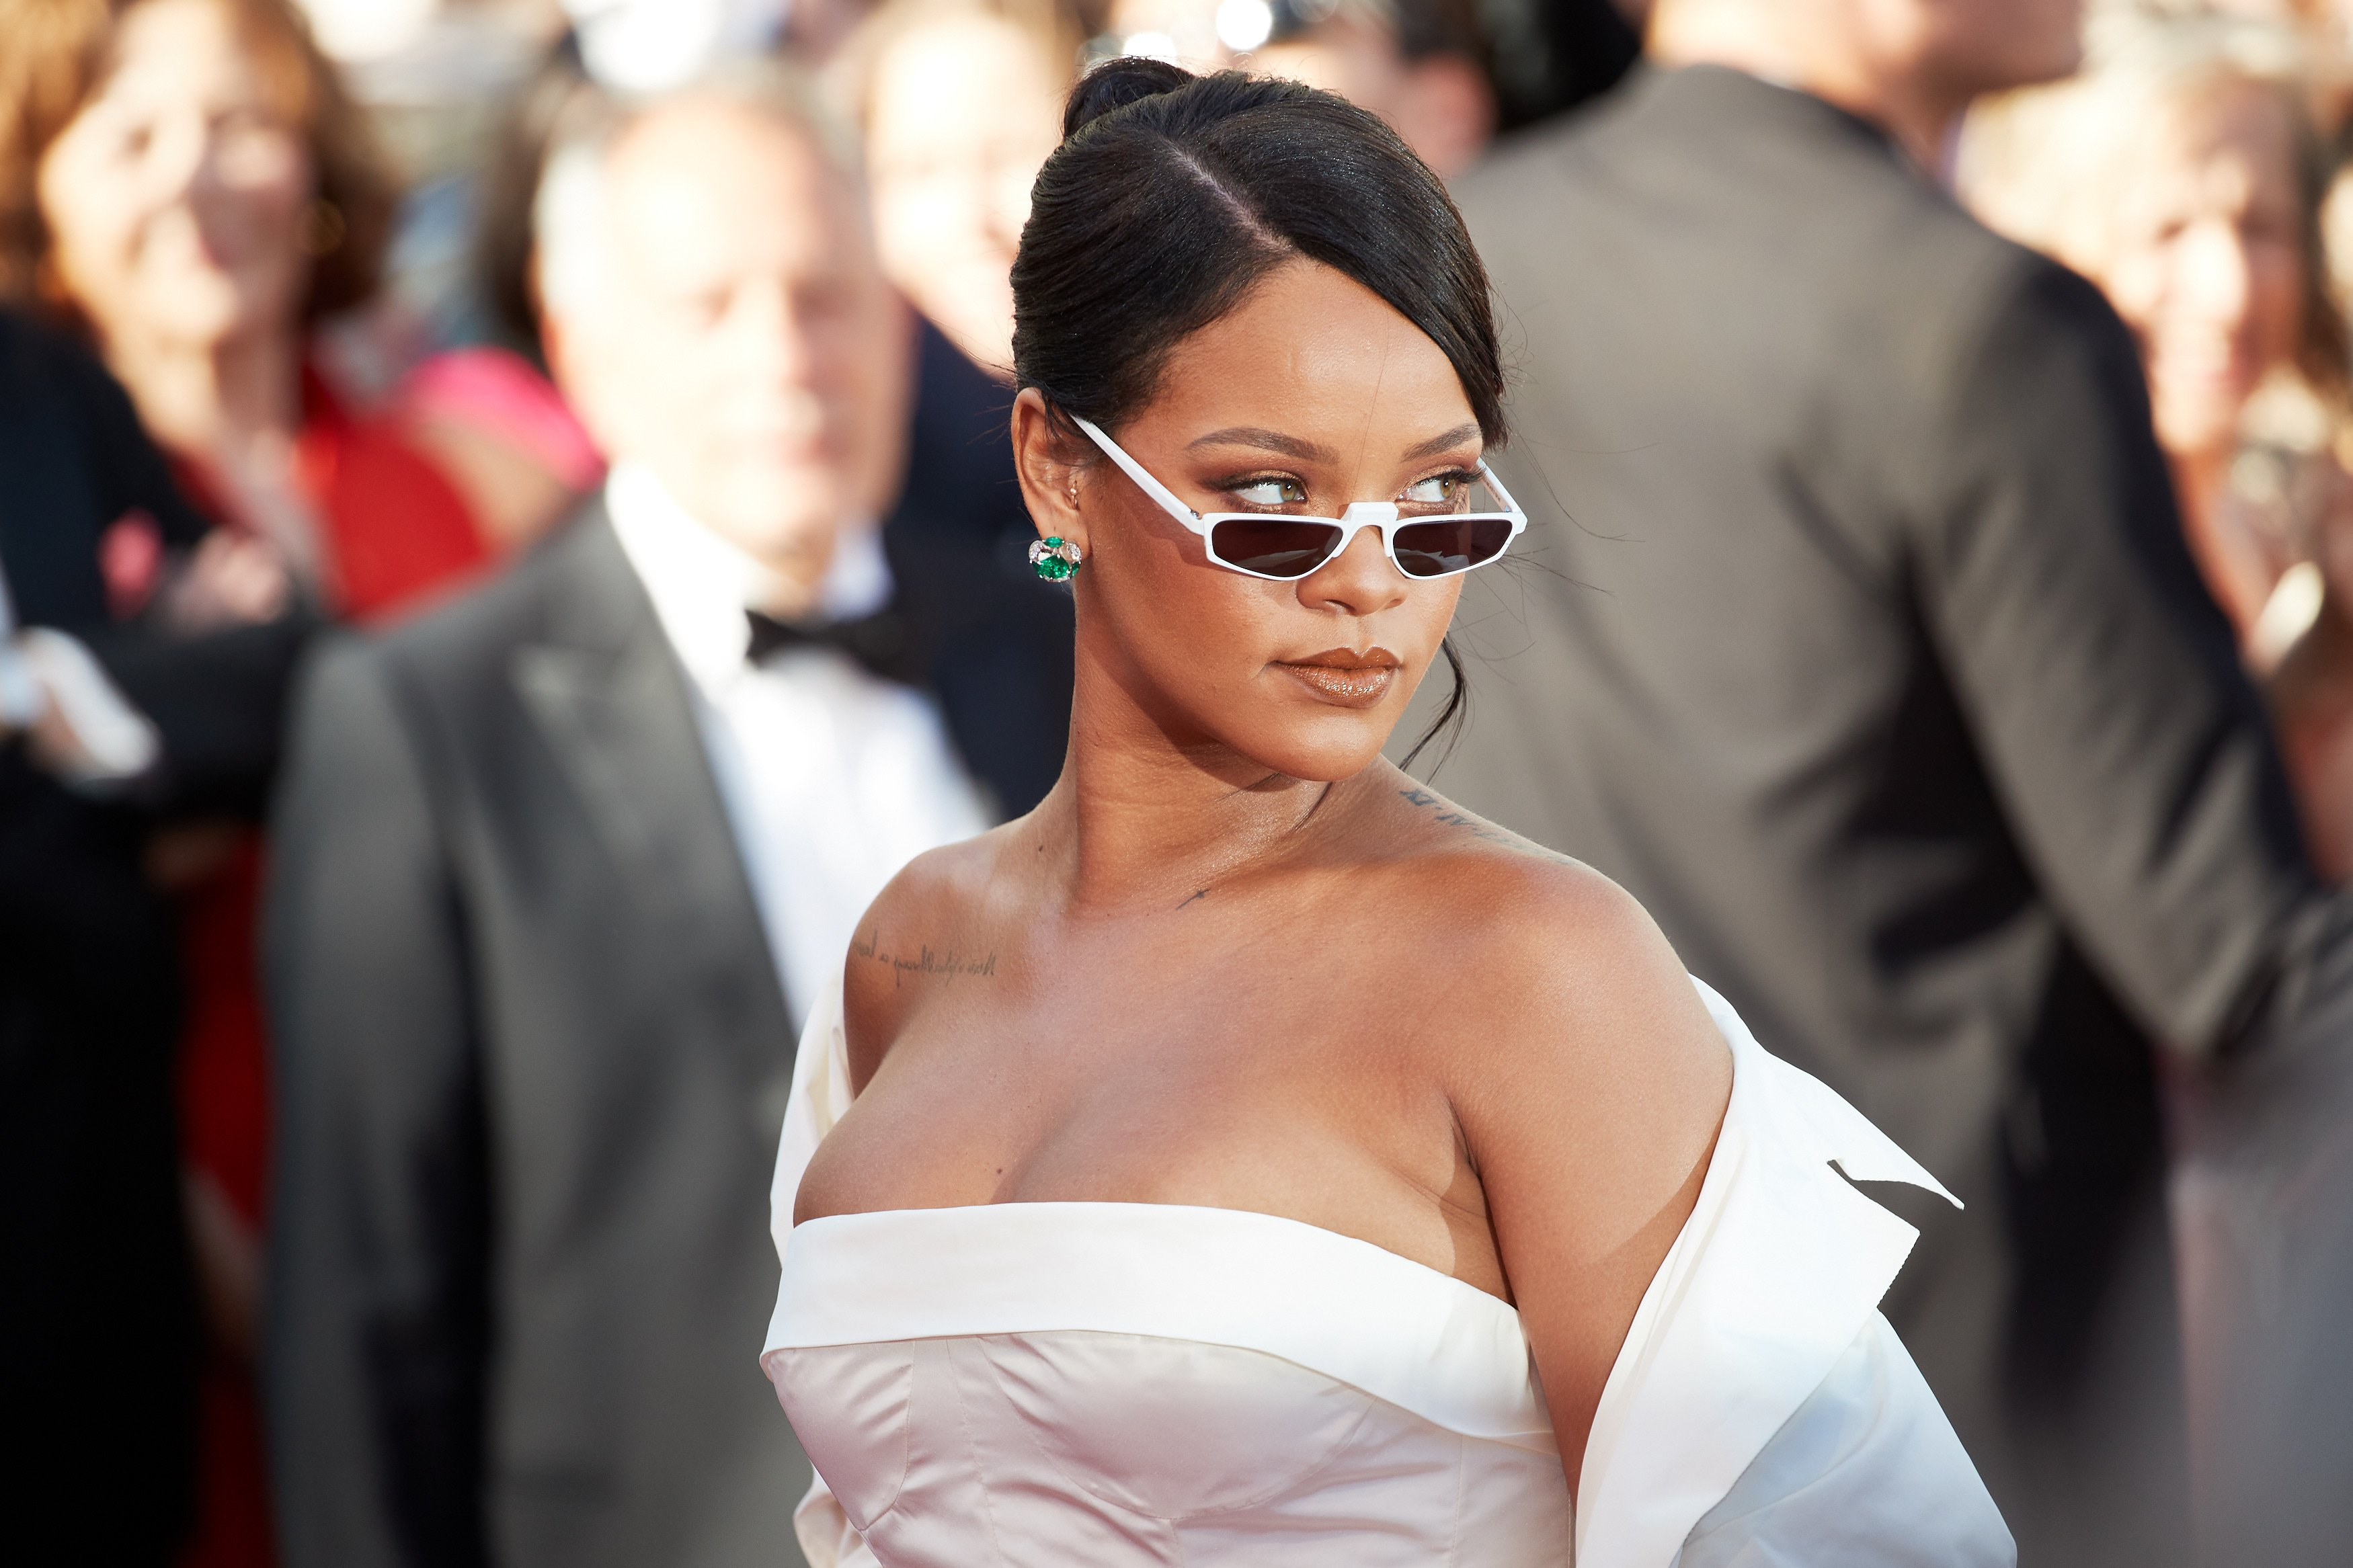 Rihanna during the 70th annual Cannes Film Festival on May 19, 2017 in France | Photo: Getty Images